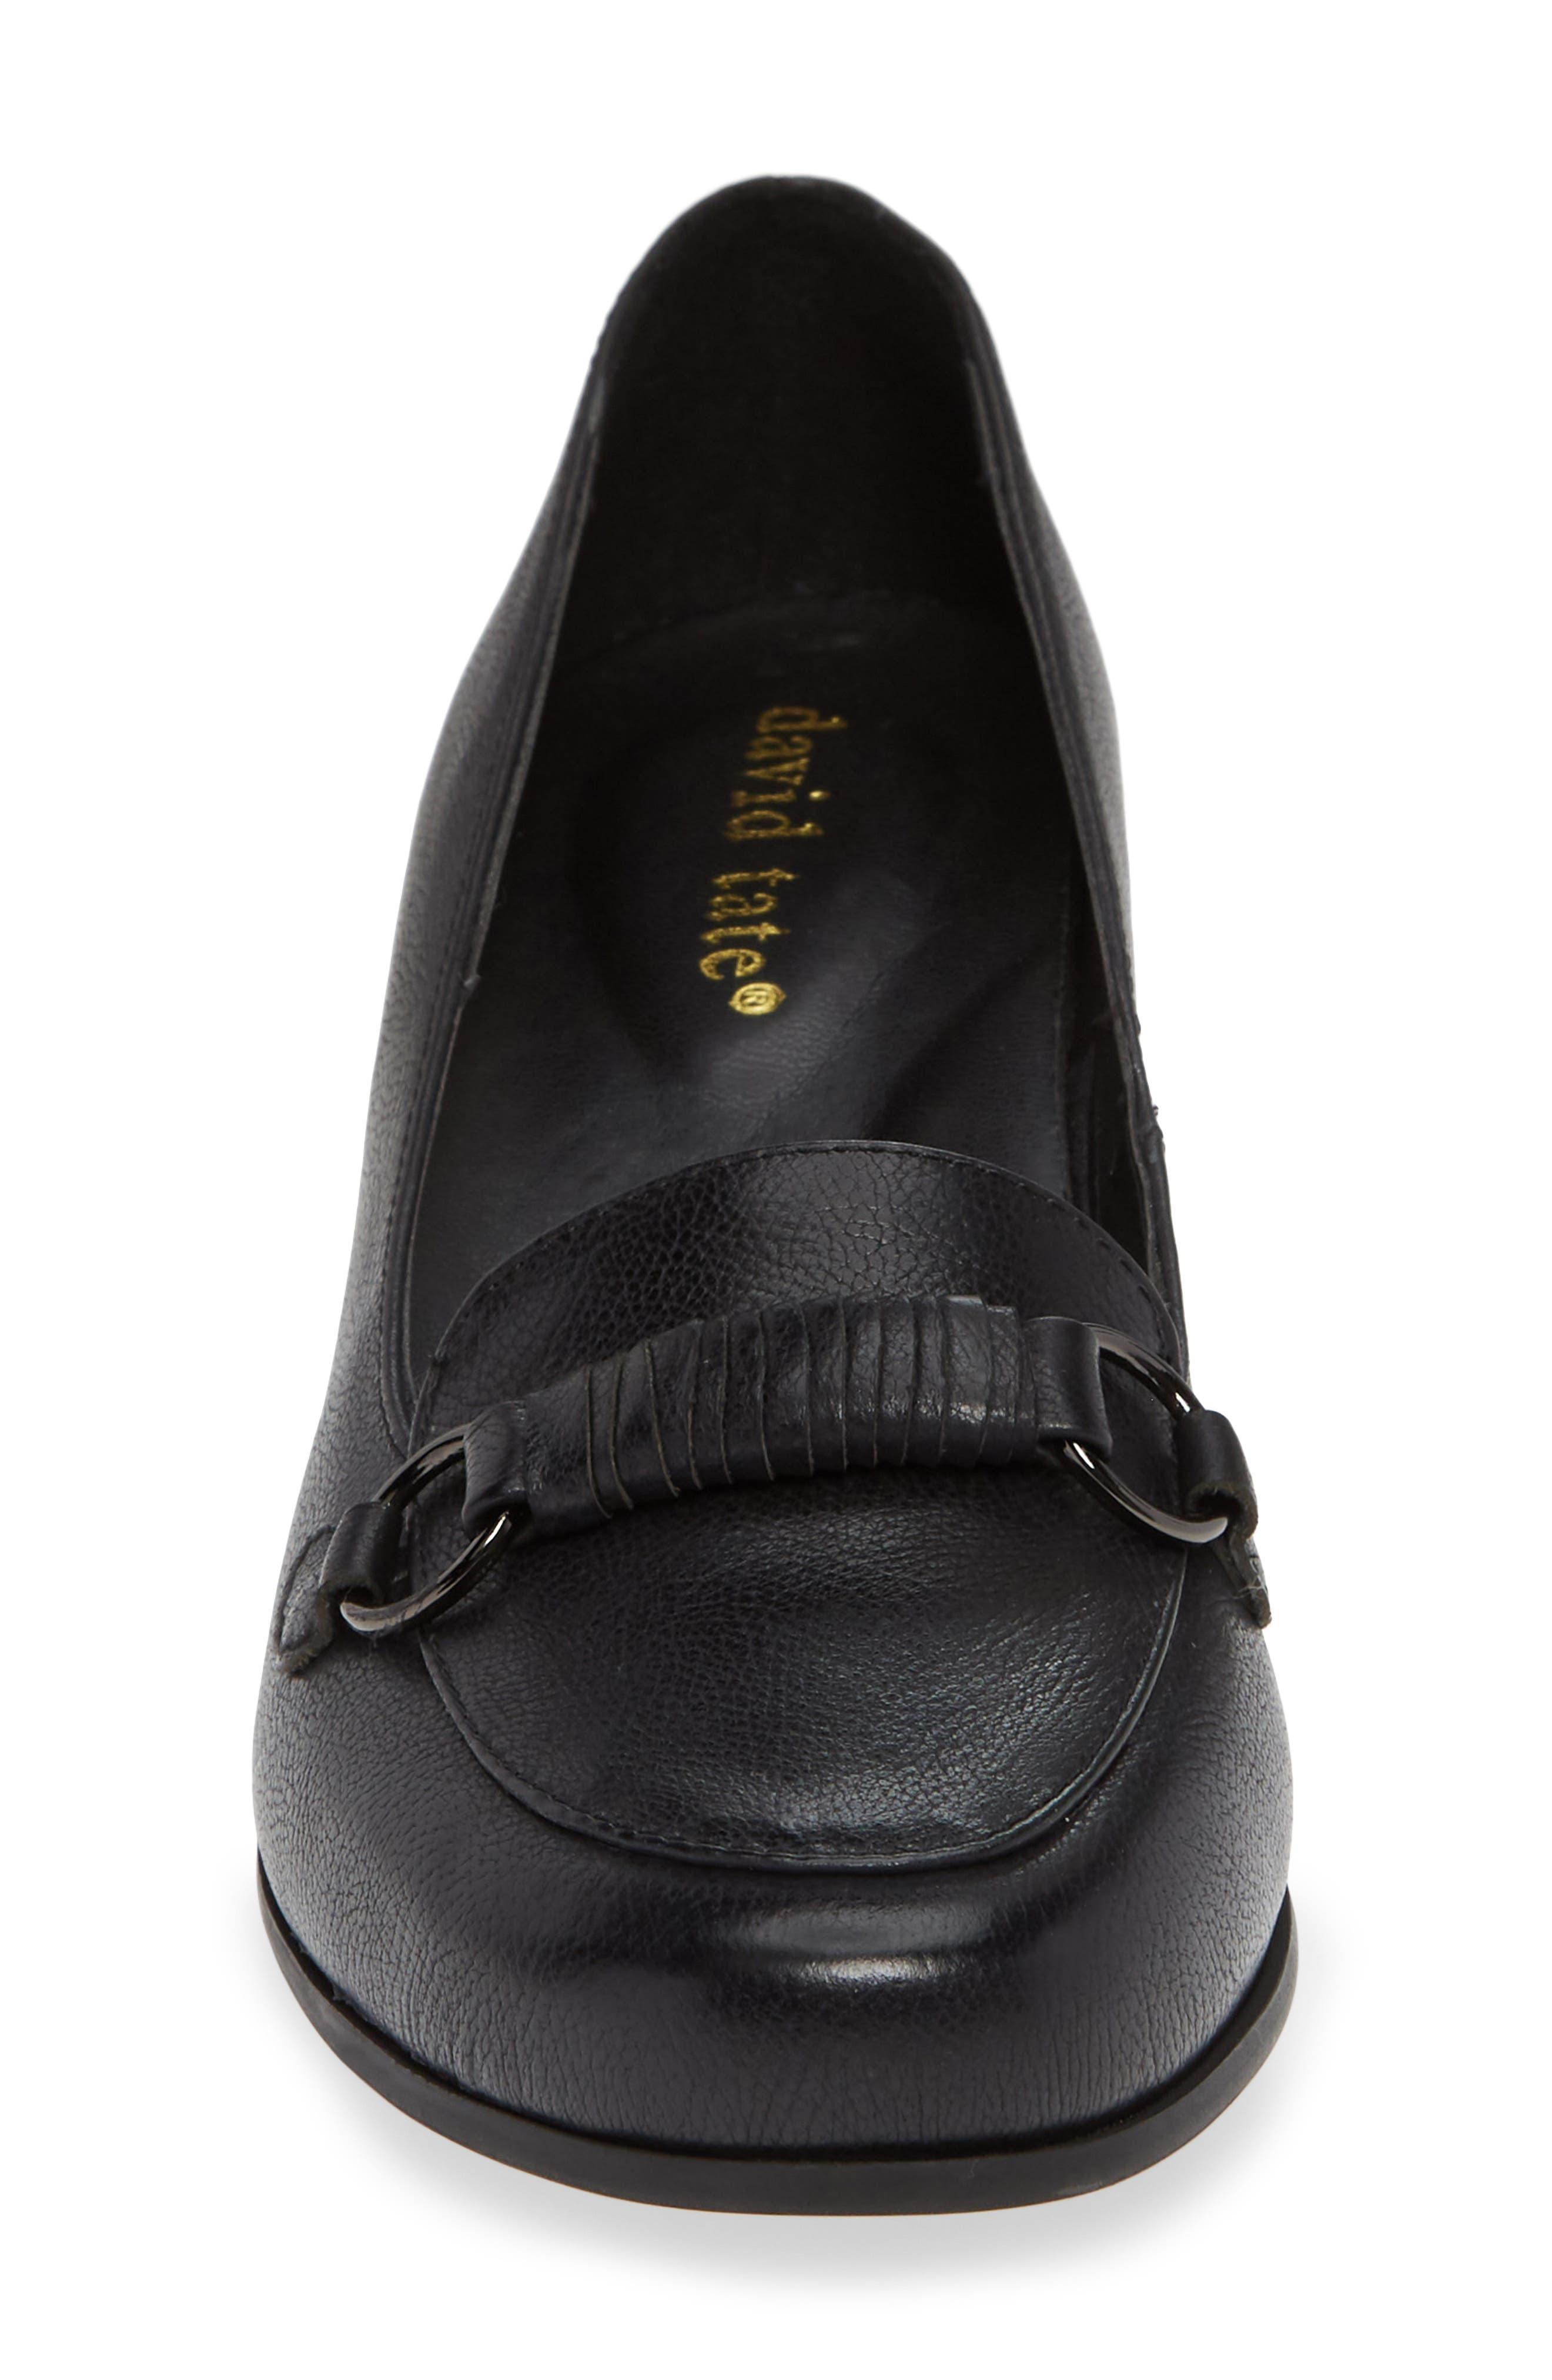 Perky Loafer Pump,                             Alternate thumbnail 4, color,                             BLACK LEATHER